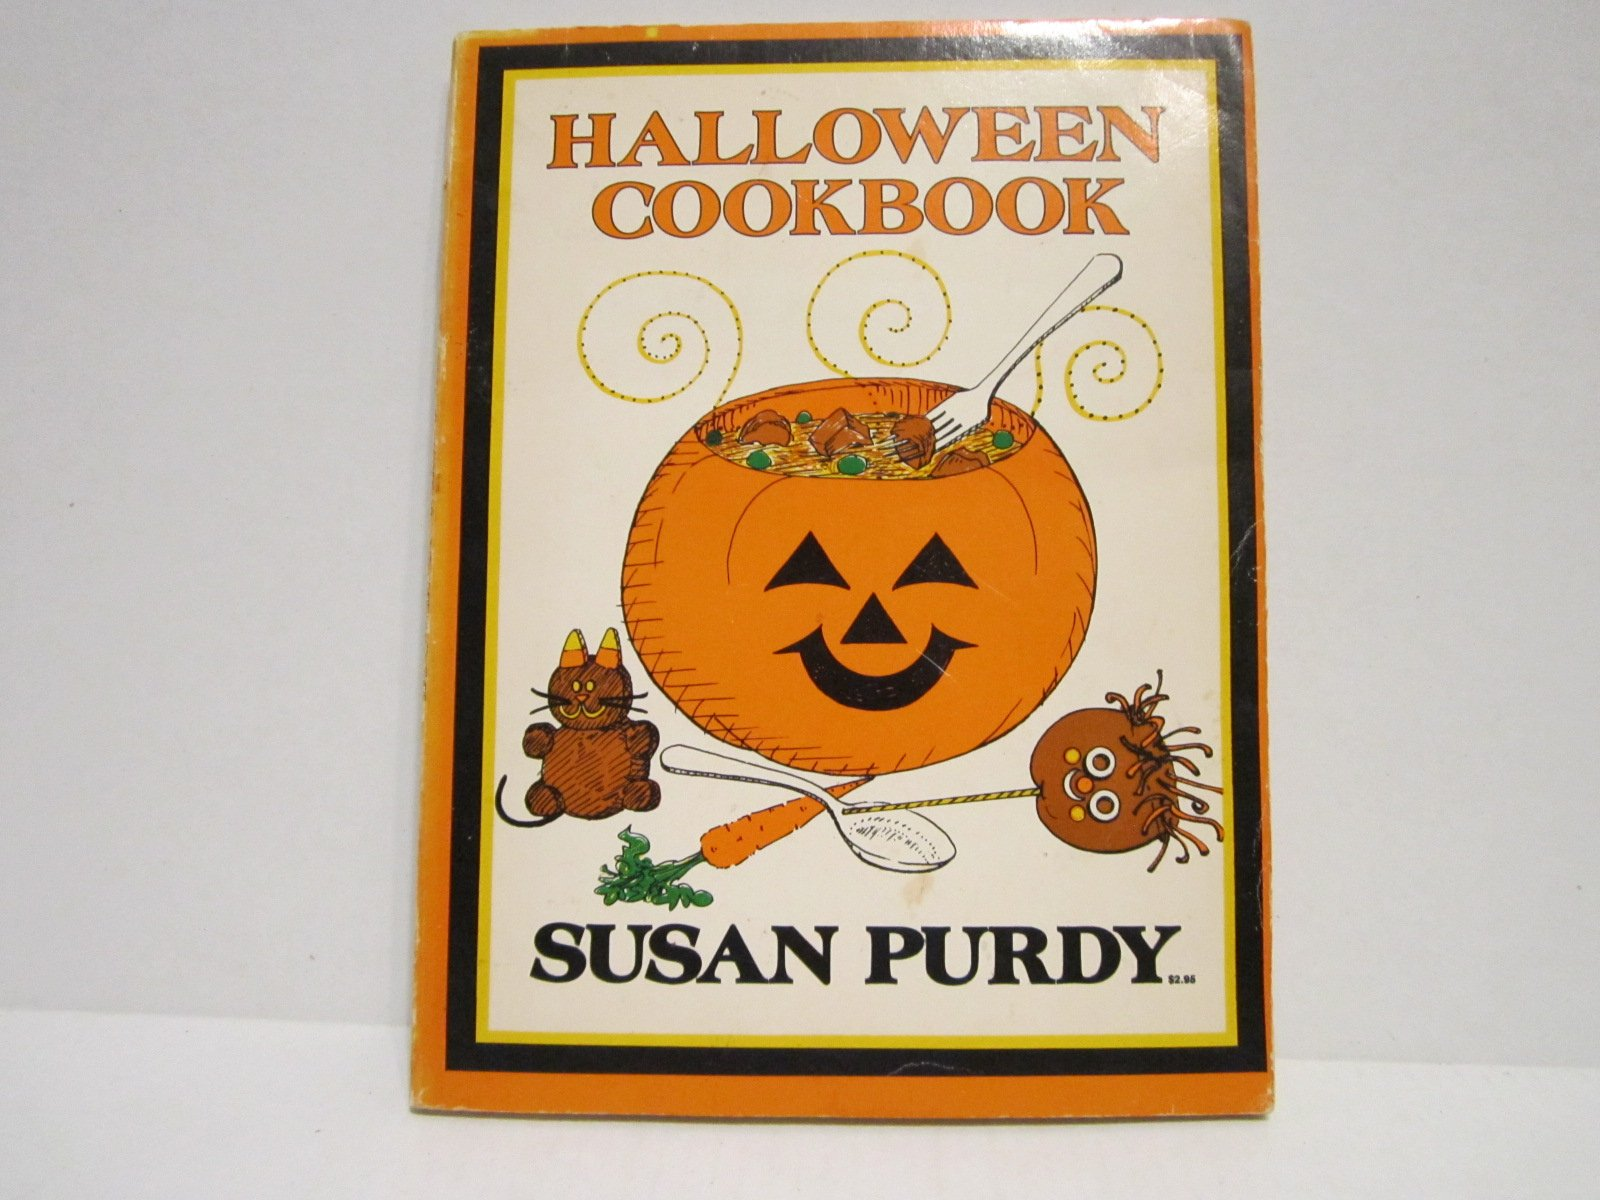 Halloween Cookbook, Susan Purdy